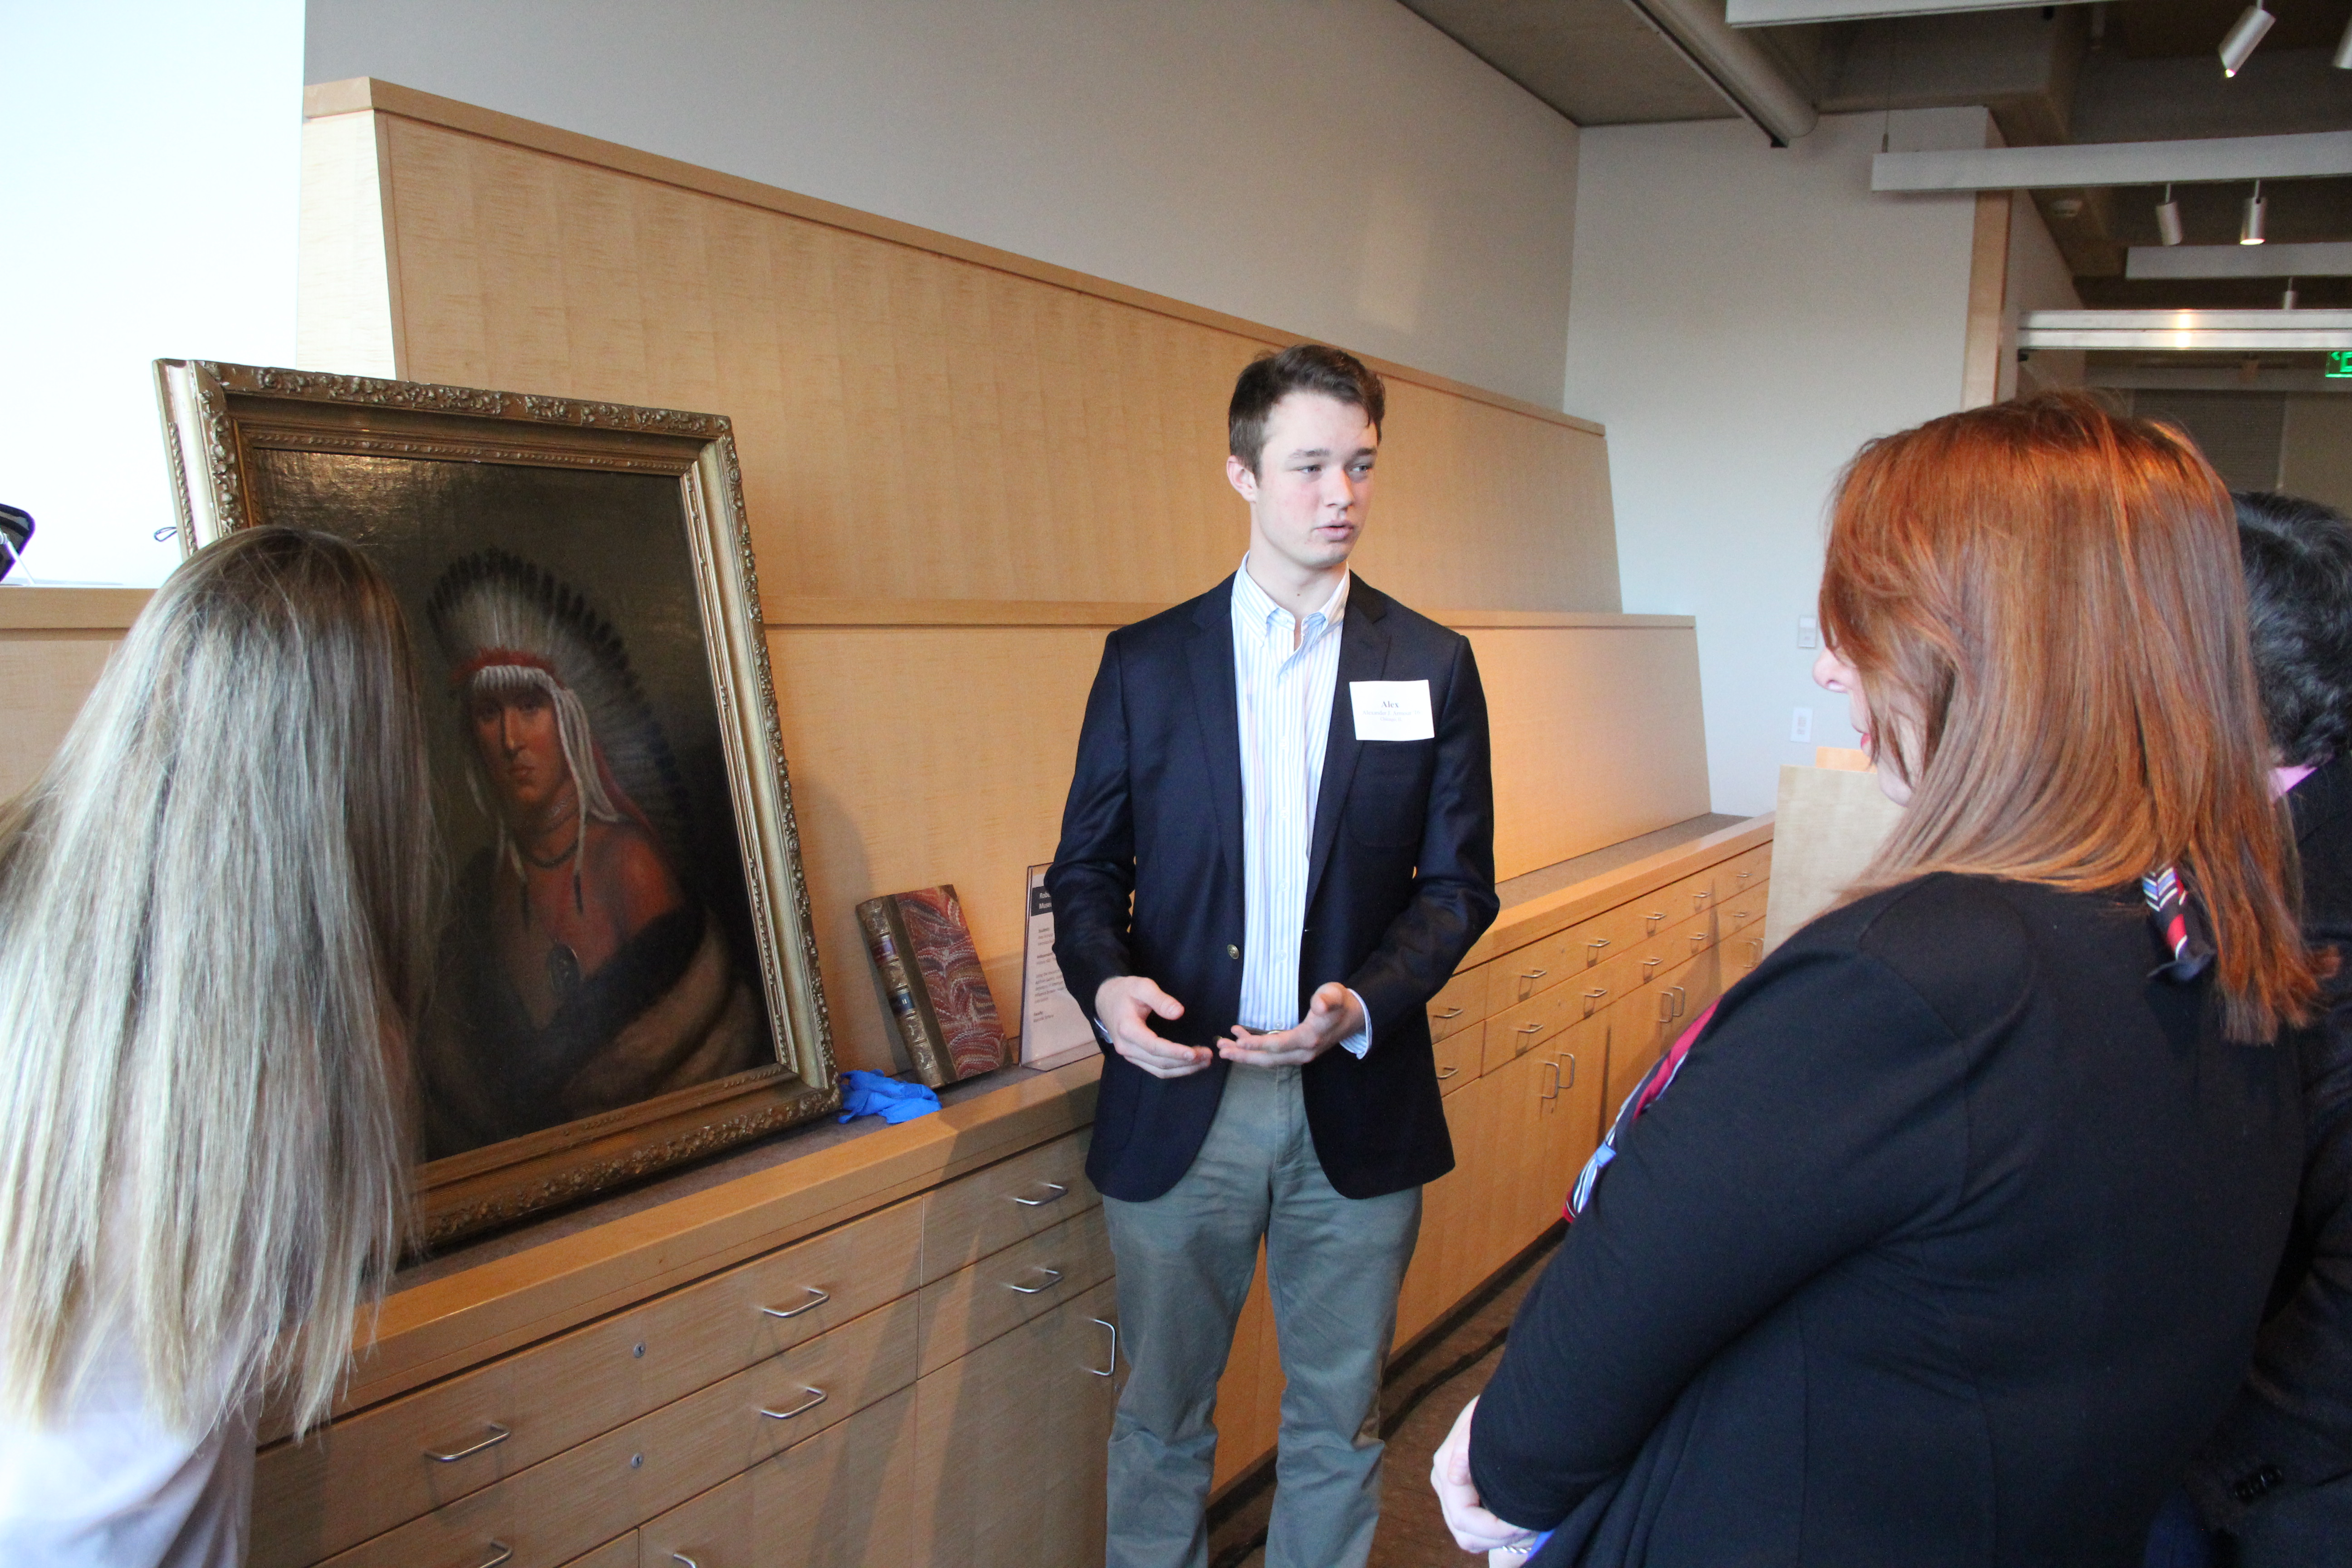 Image shows two students standing on either side of an oil painting of a Native American and explaining their work to onlookers.